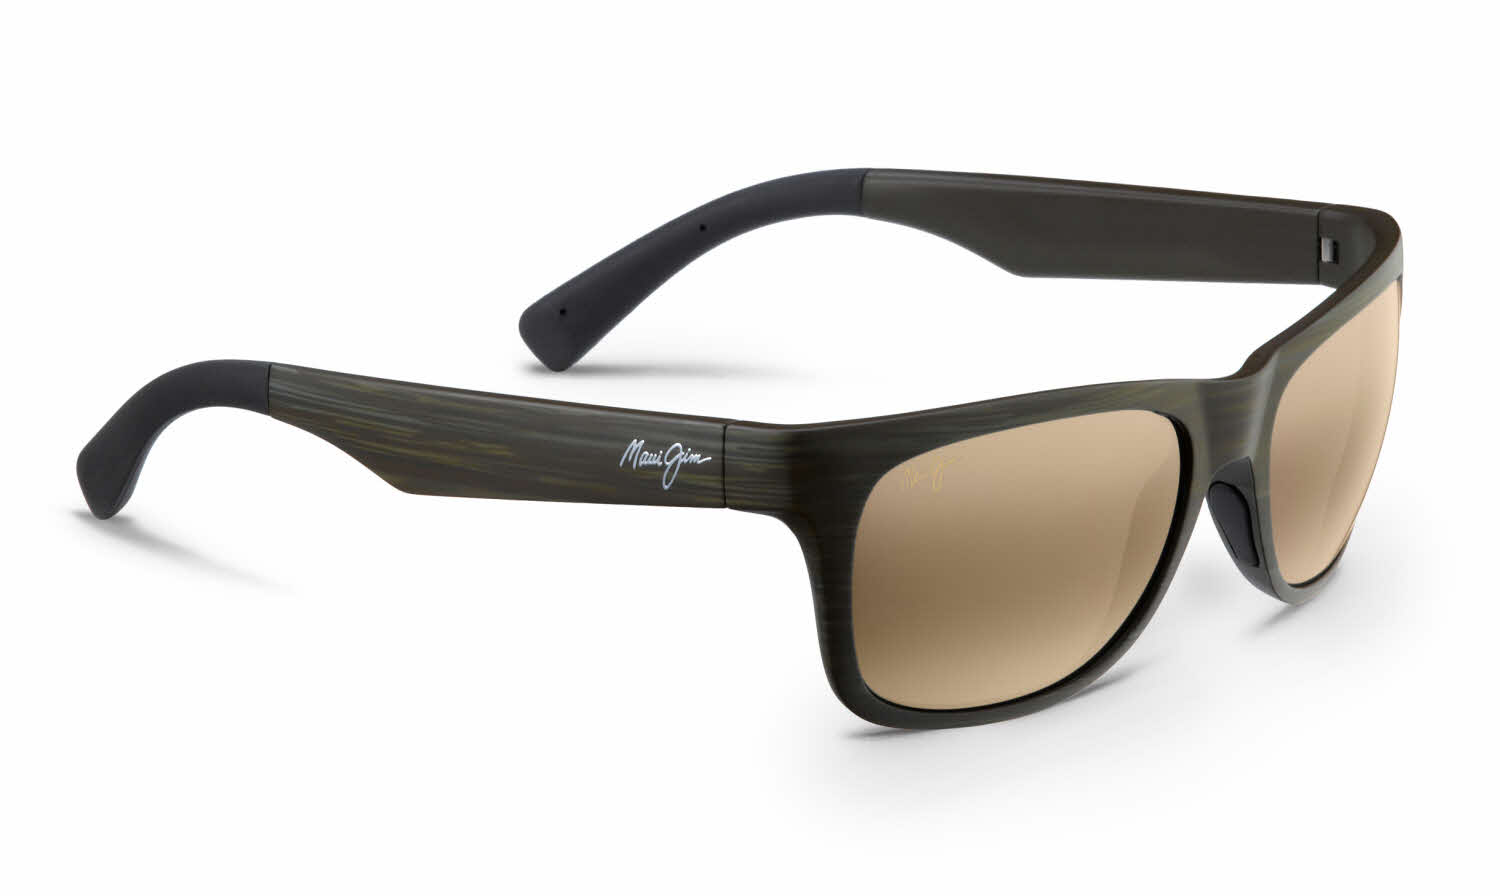 a4ce01502c0 Maui Jim Kahi-736 Prescription Sunglasses